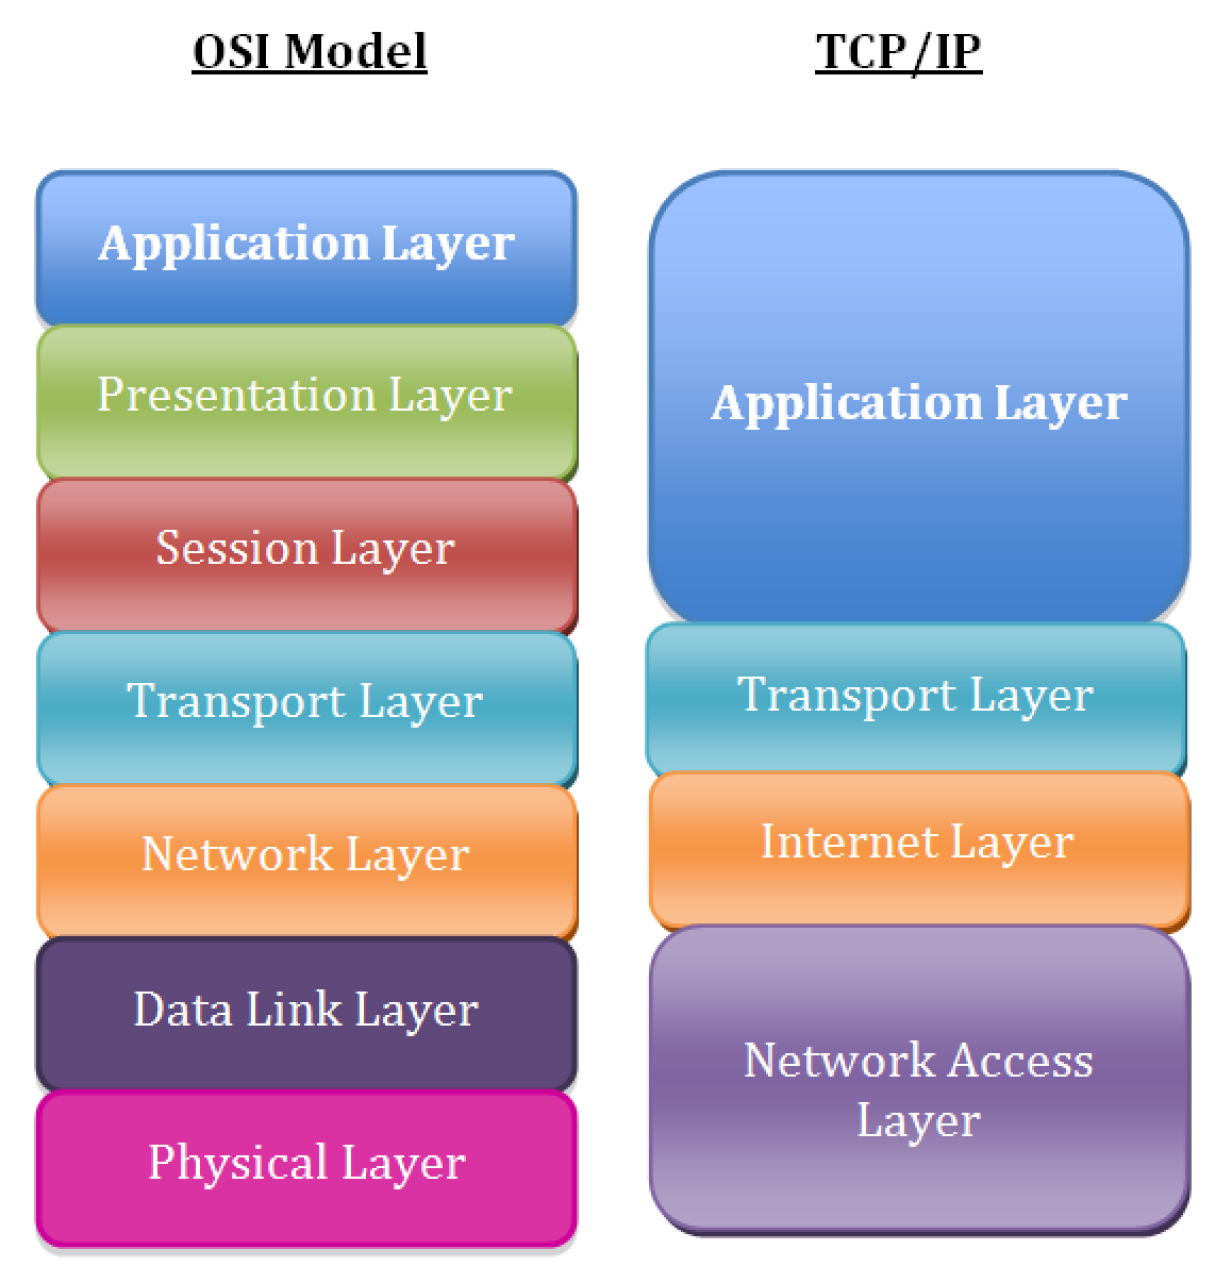 OSI Model Layers and corresponding TCP/IP Layers